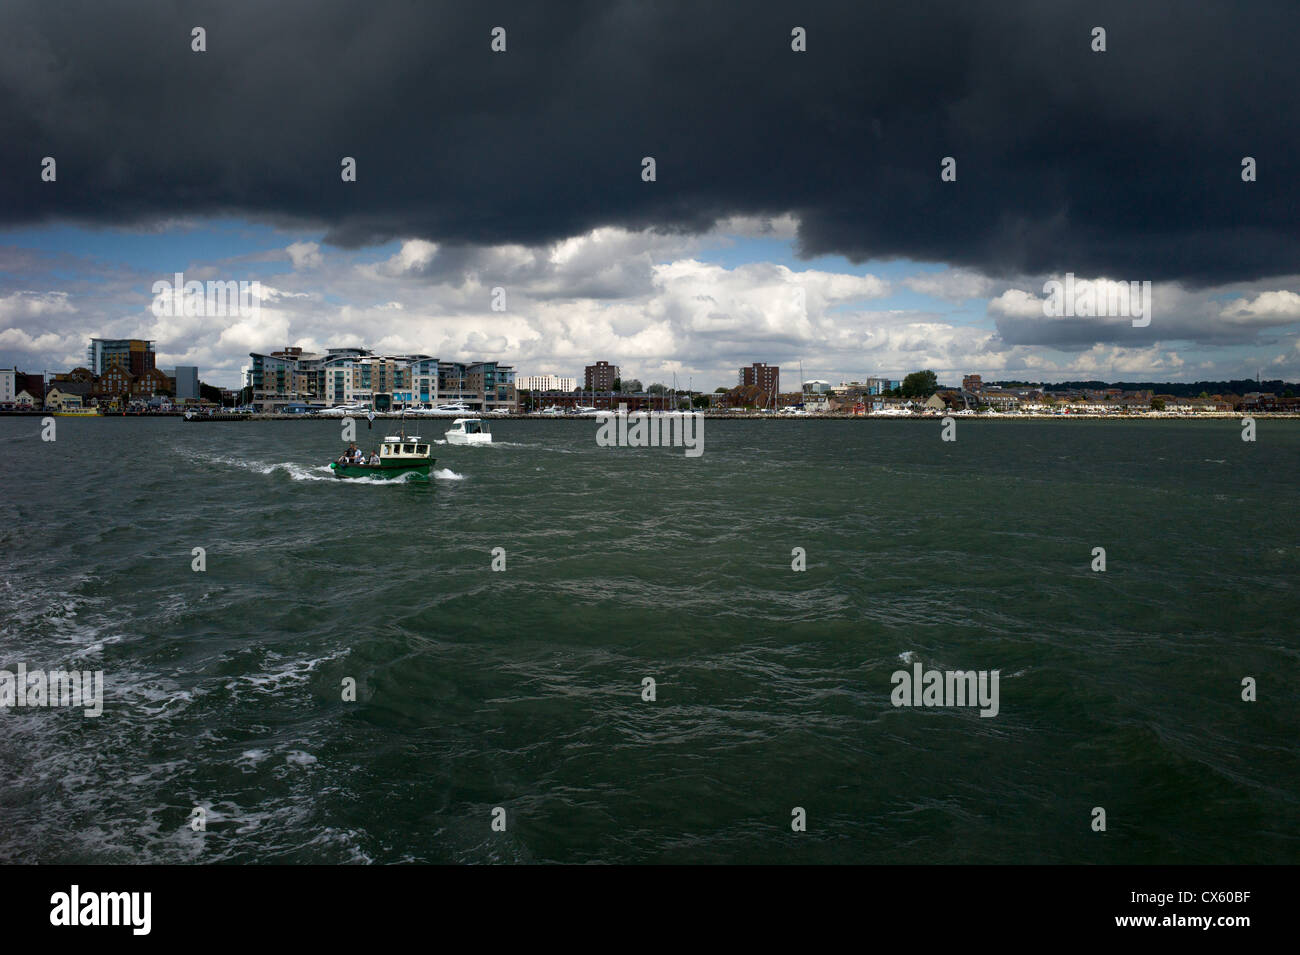 a weather storm black rain cloud approaches over Poole while the sea boats are bathed in sunlight - Stock Image